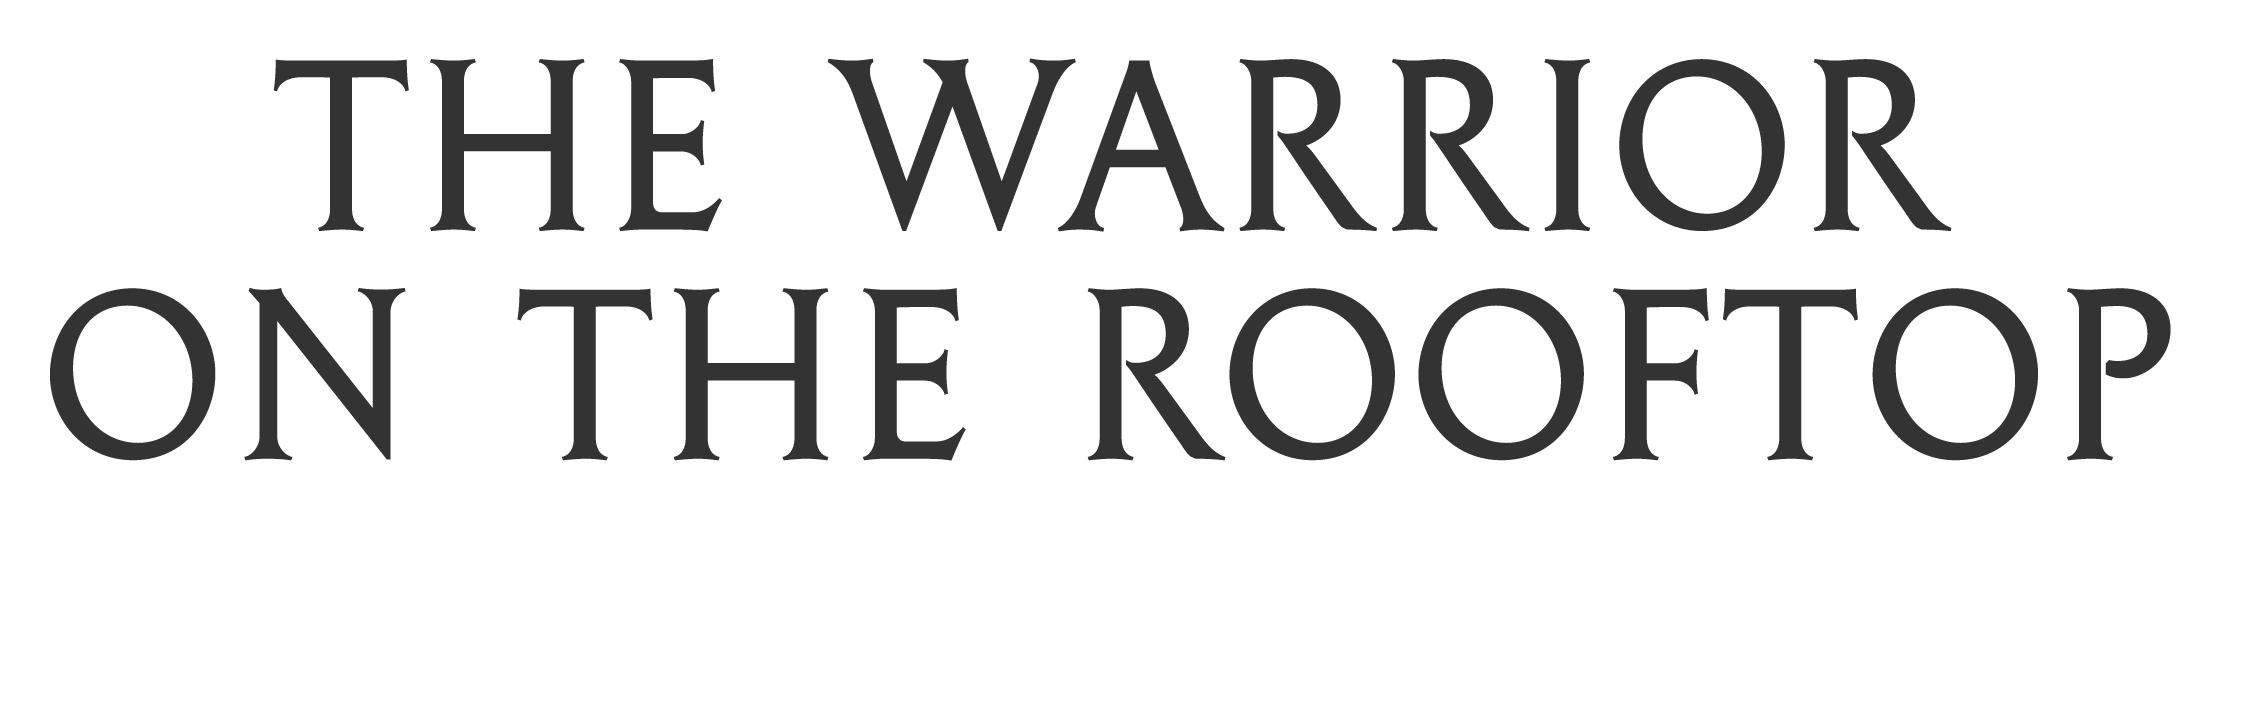 The Warrior on the Rooftop Web Logo-01.png